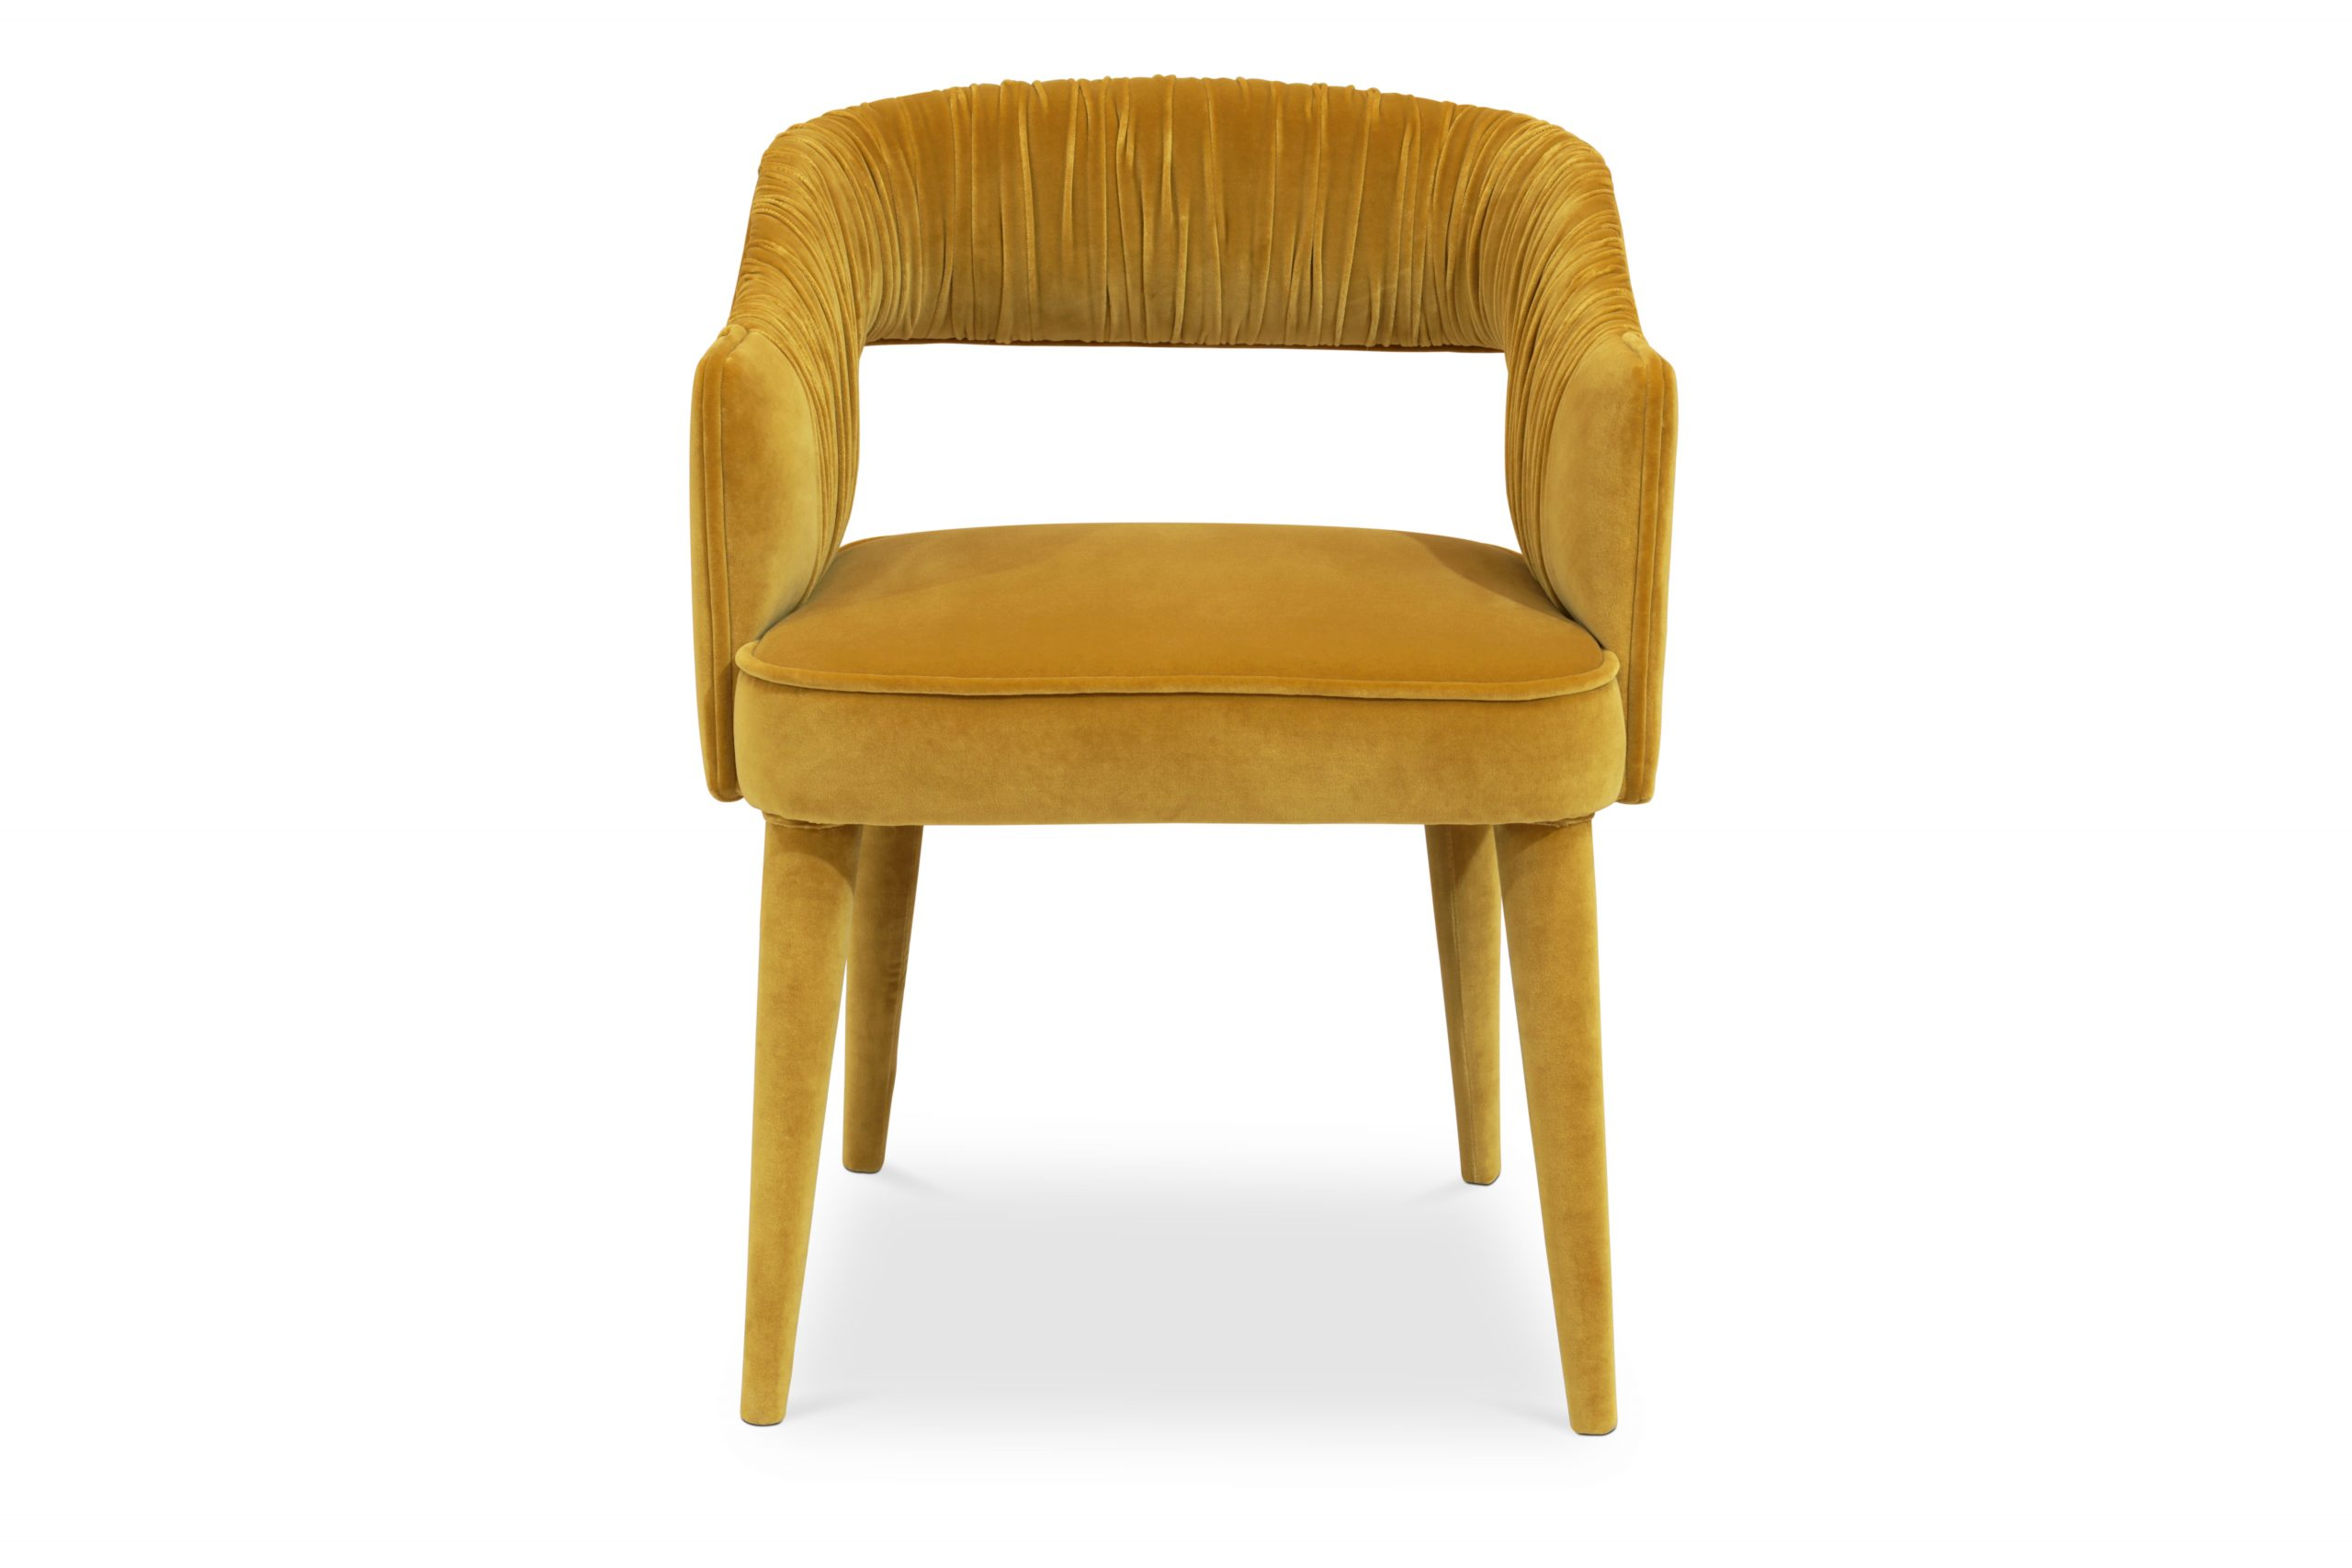 Discover STOLA Dining Chair: A Symbol of Modern Simplicity